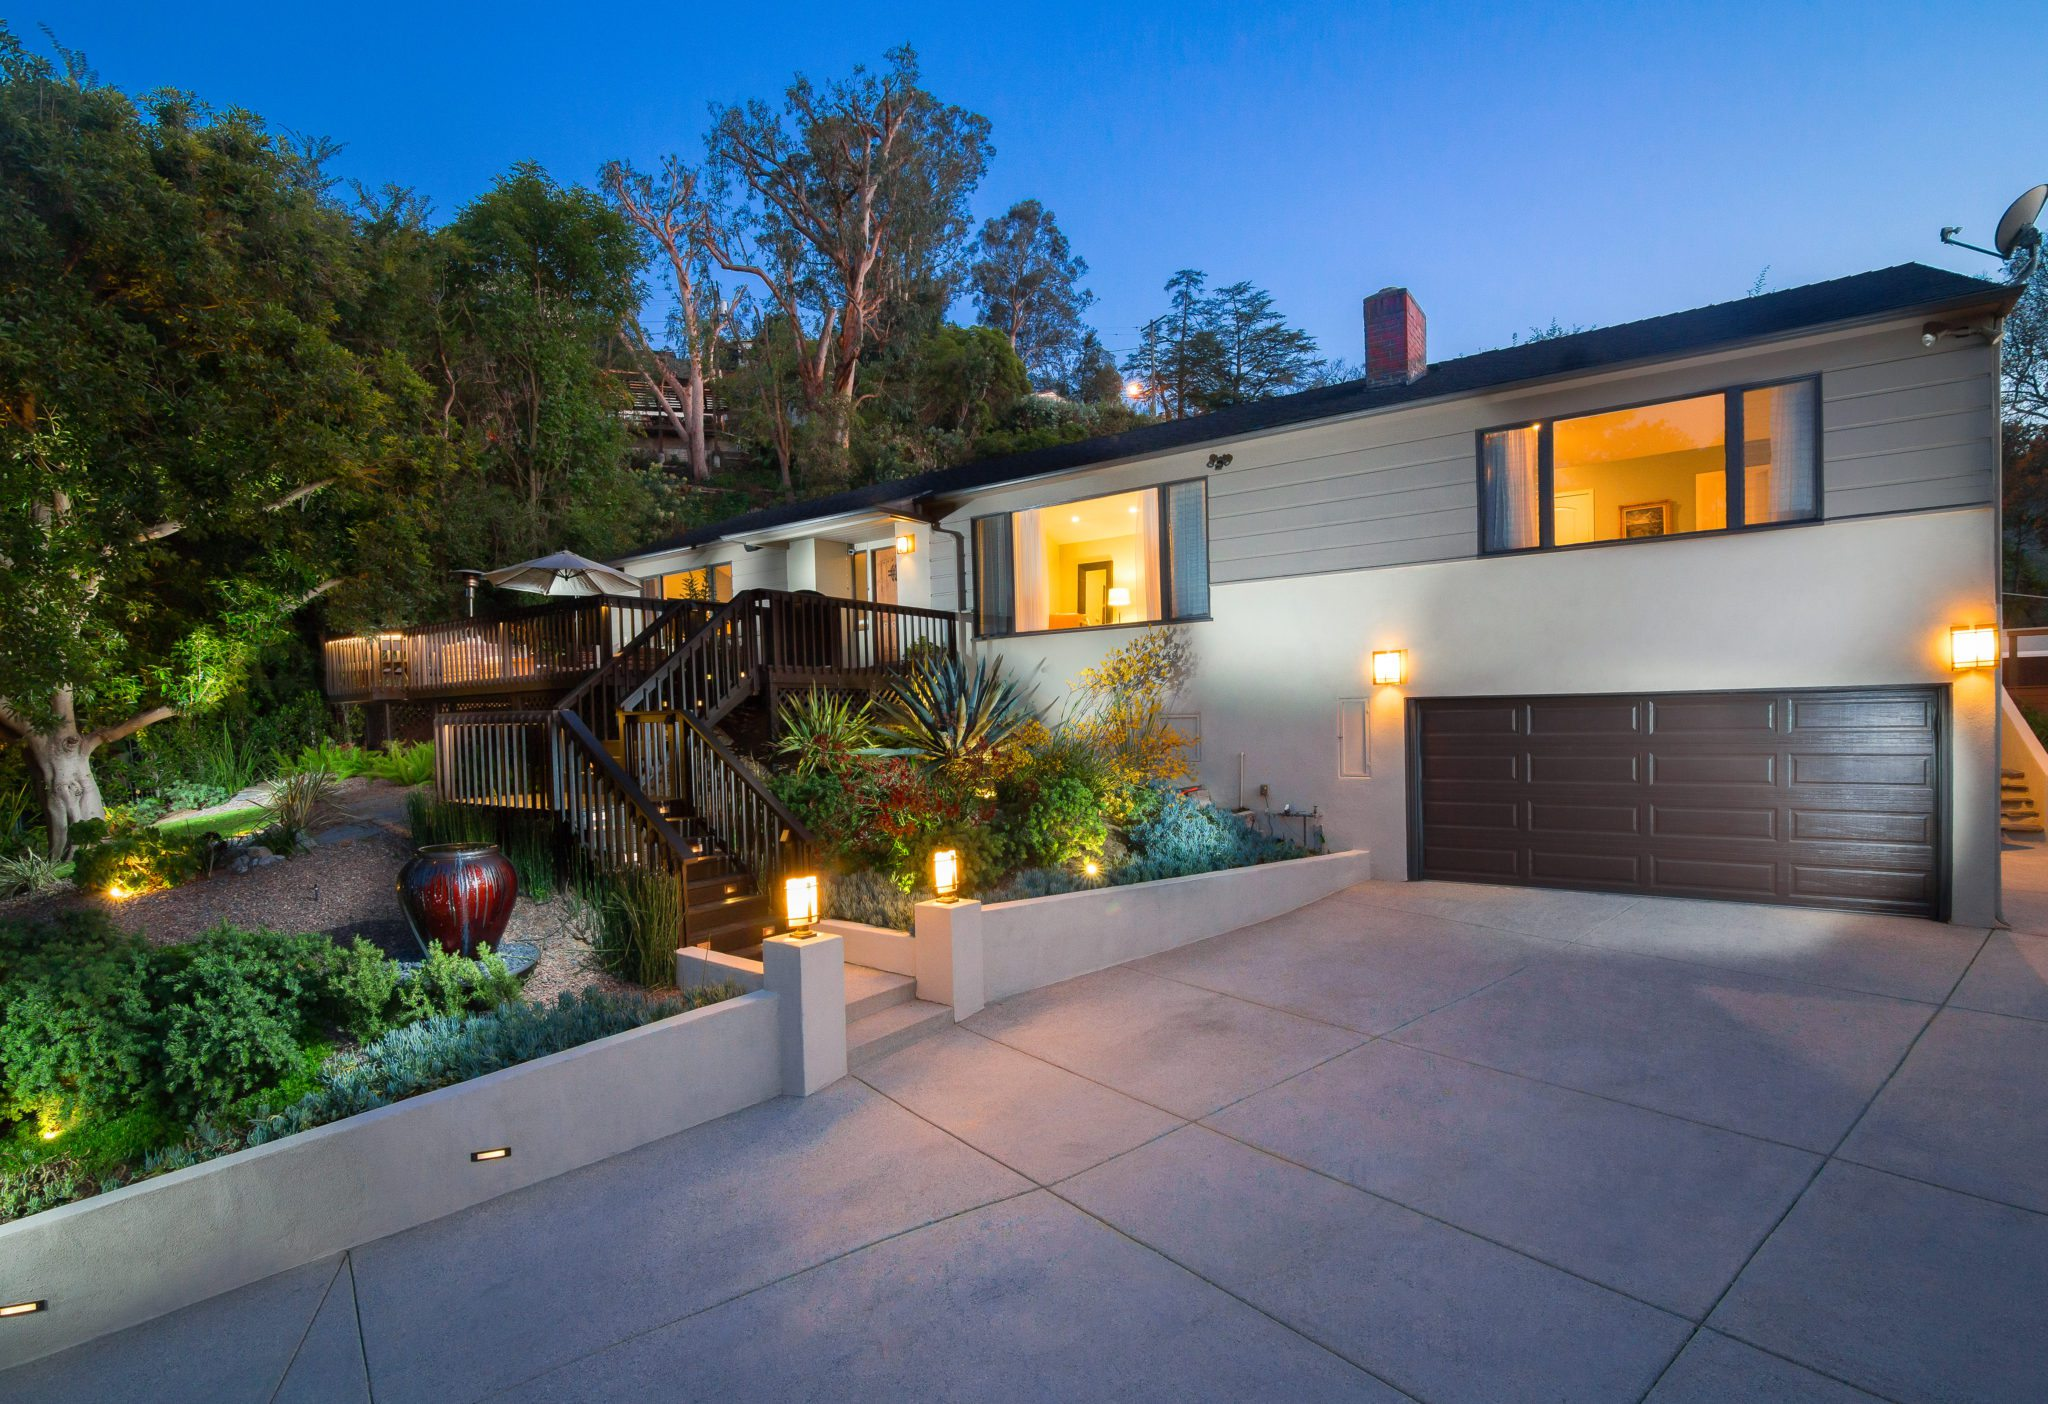 front yard ideas, luxury real estate,los angeles homes